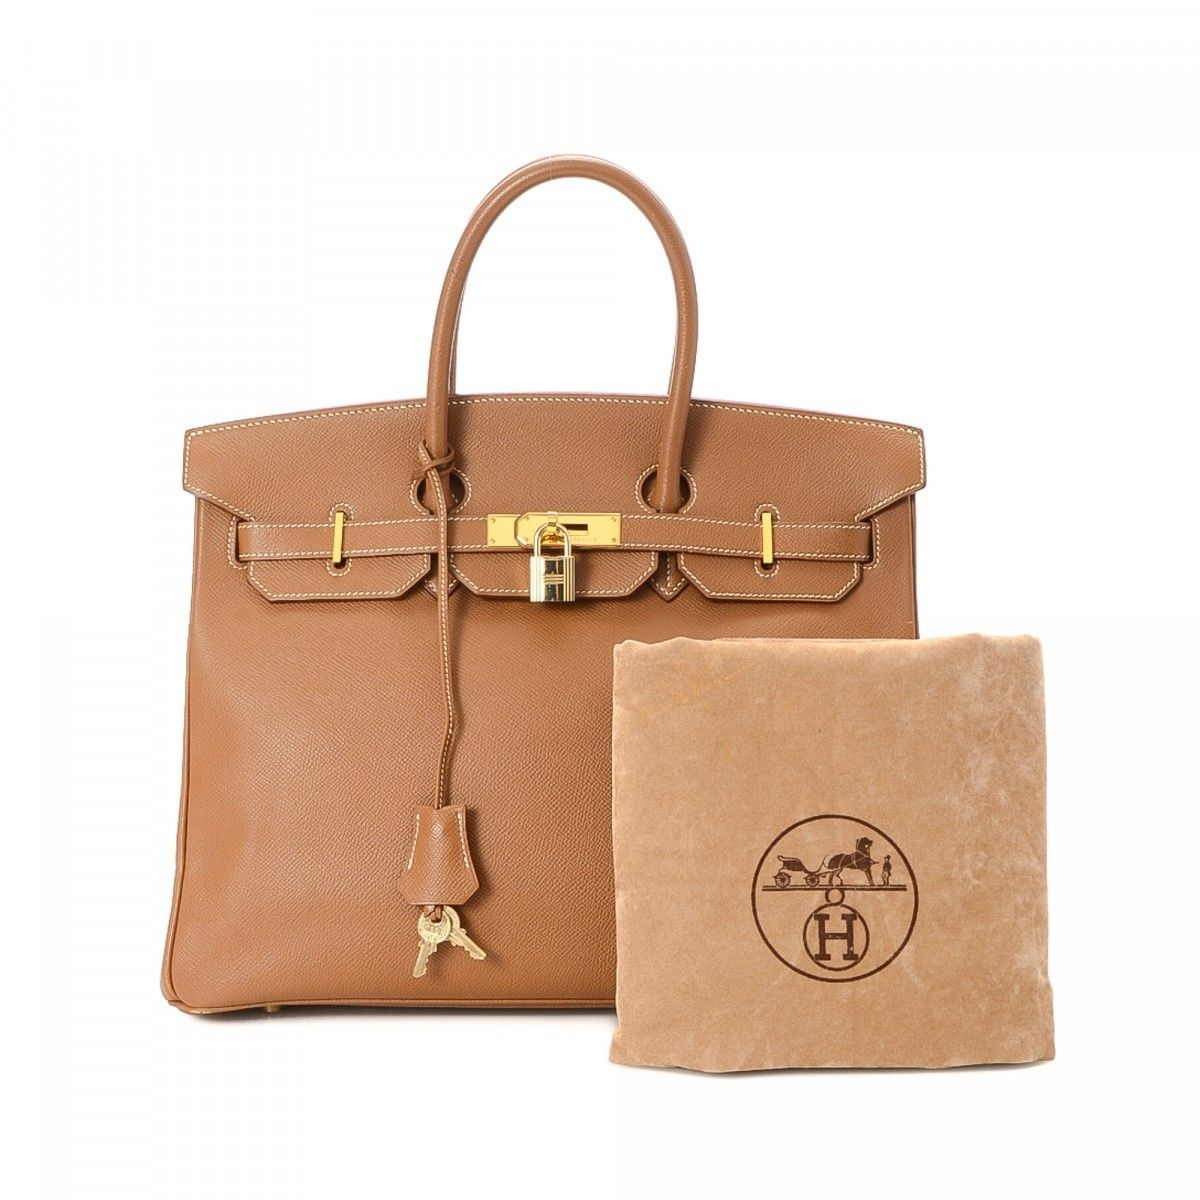 a7bbb8b86b7 Hermès Birkin 35 Gold Courchevel GHW Courchevel Calf - LXRandCo ...